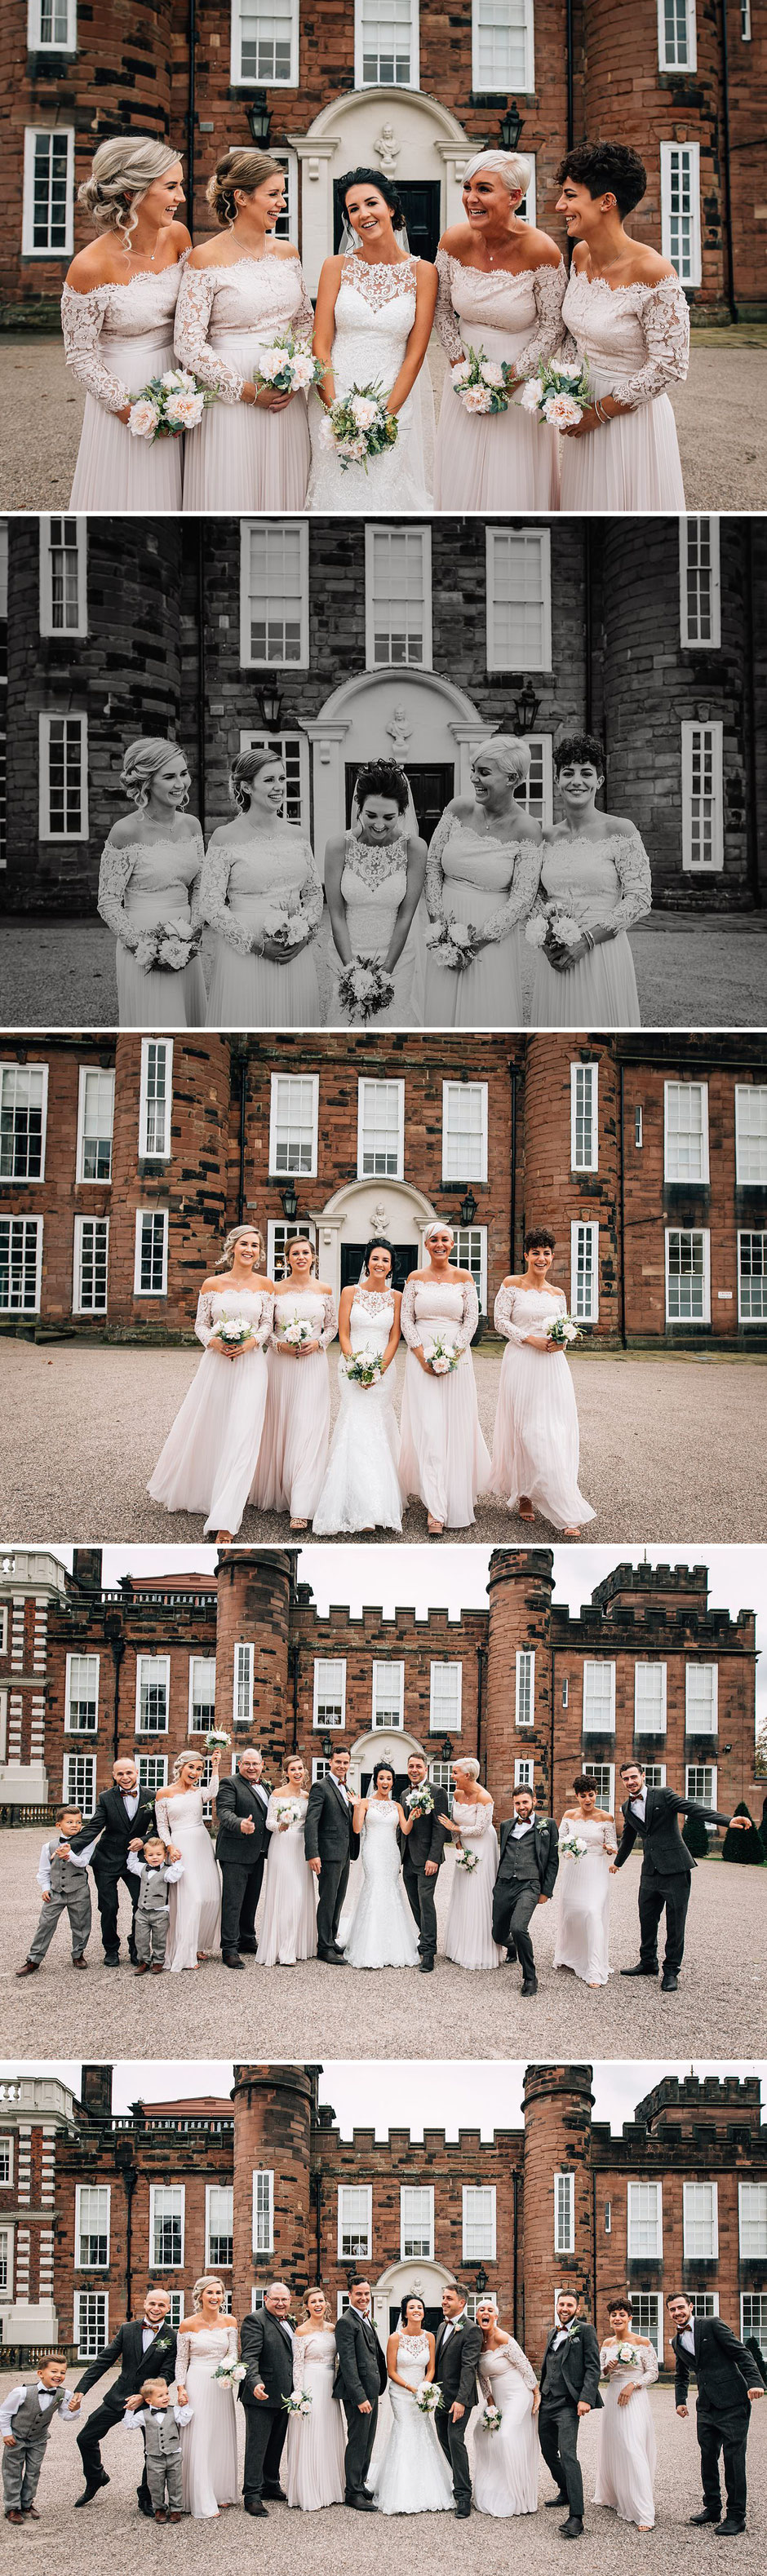 fun photographs of a bride and her bridesmaids wearing pink dresses and holding bouquets